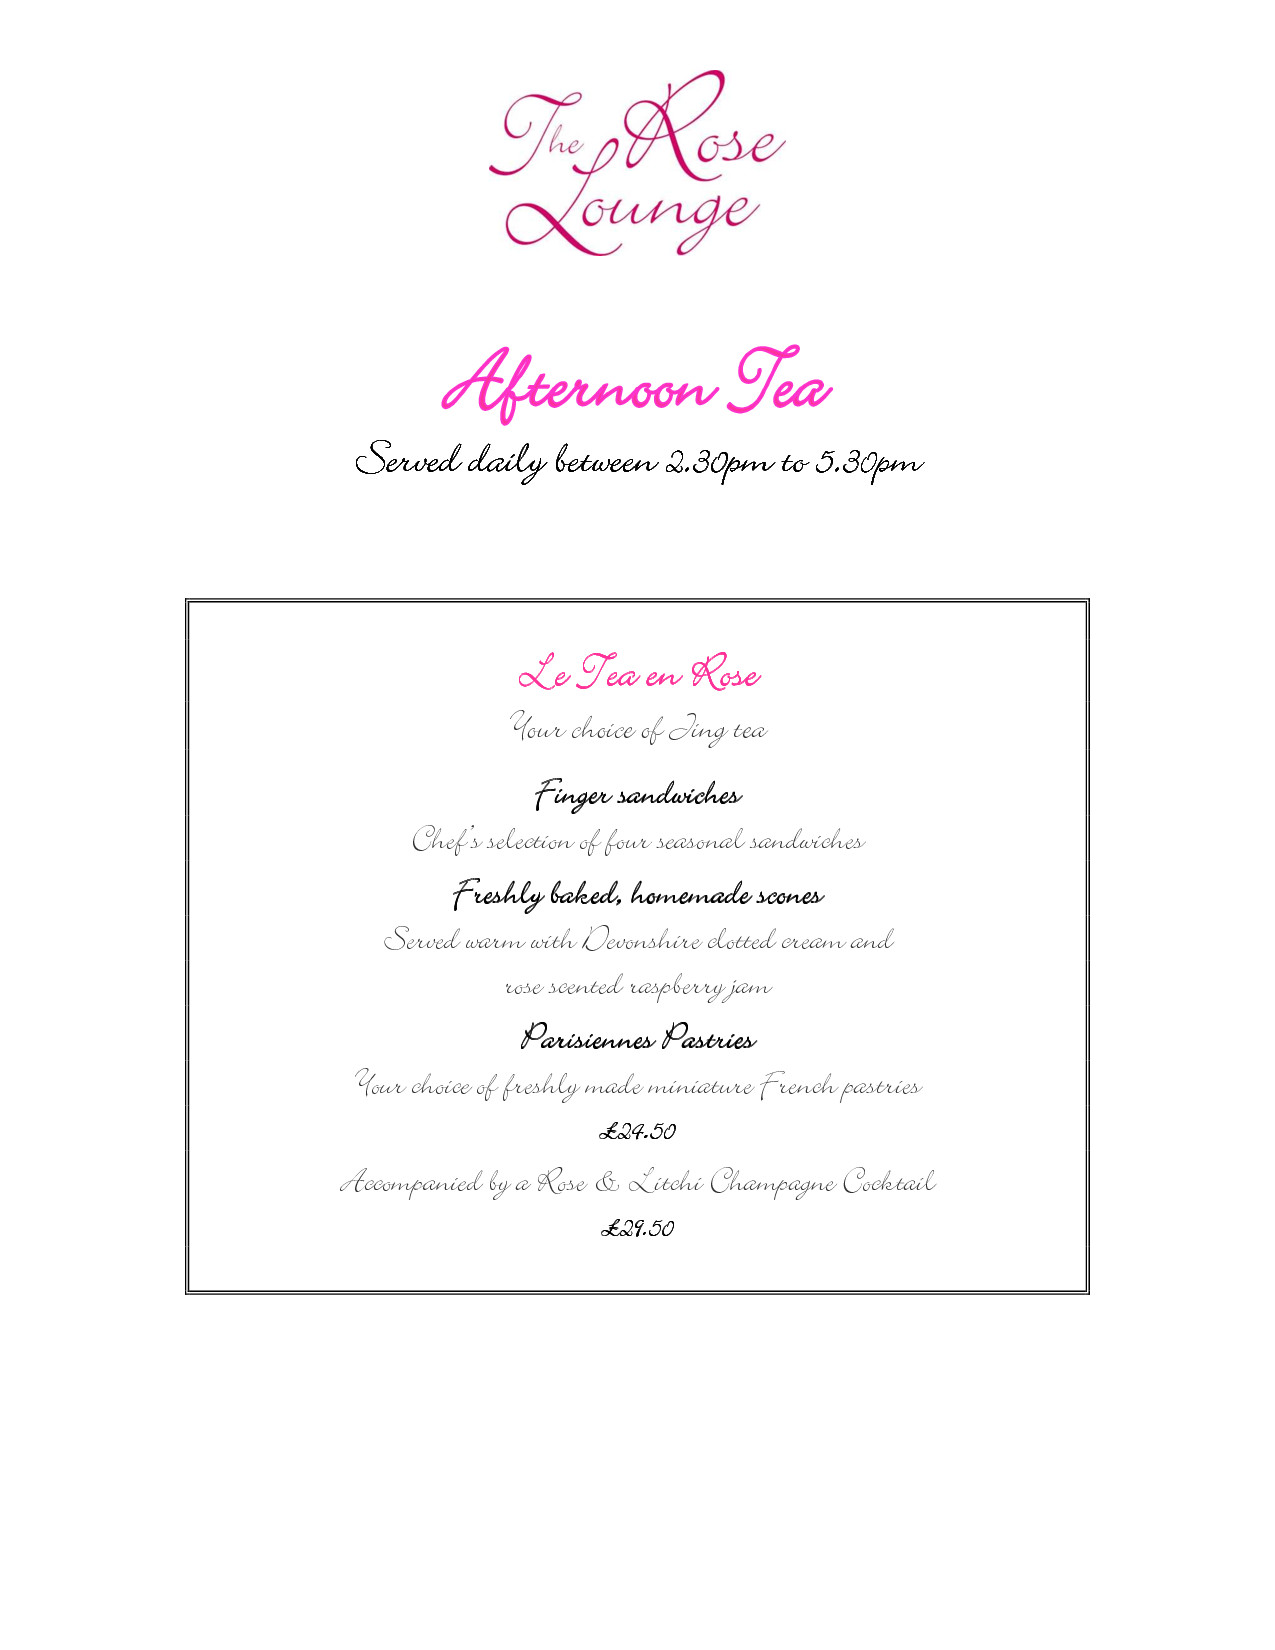 Afternoon Tea Menu Template Vintage afternoon Tea Menu Template Google Search